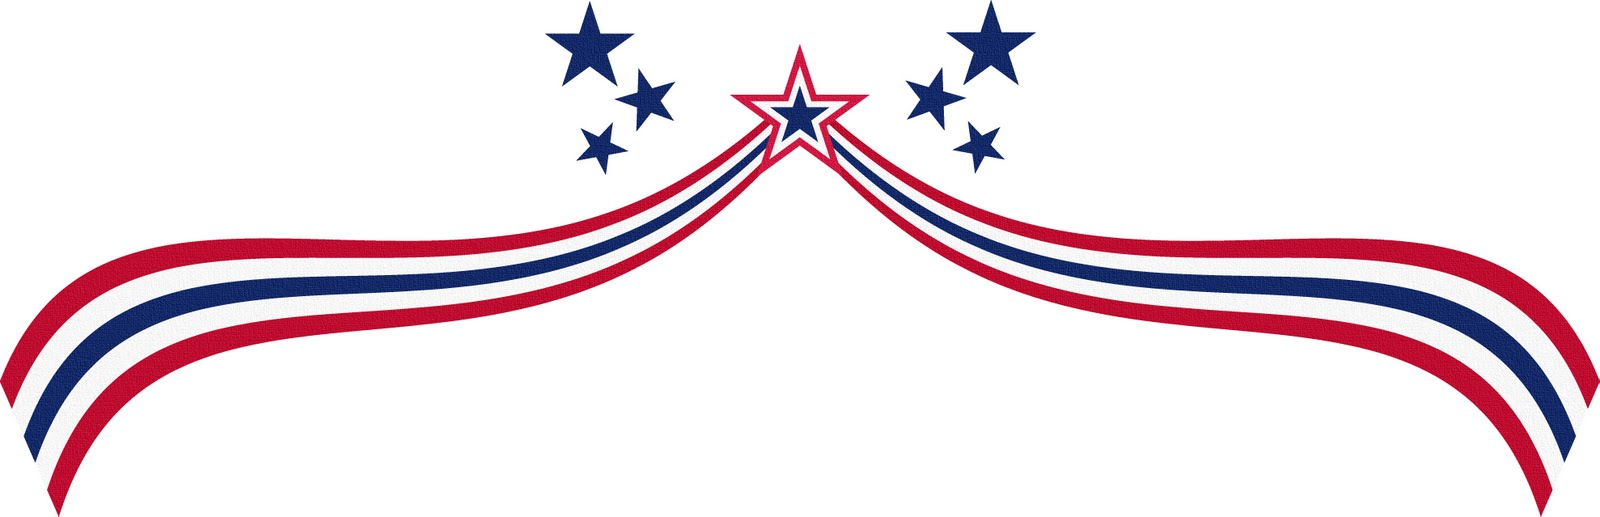 1600x517 American Flag Clipart Independence Day July 4th